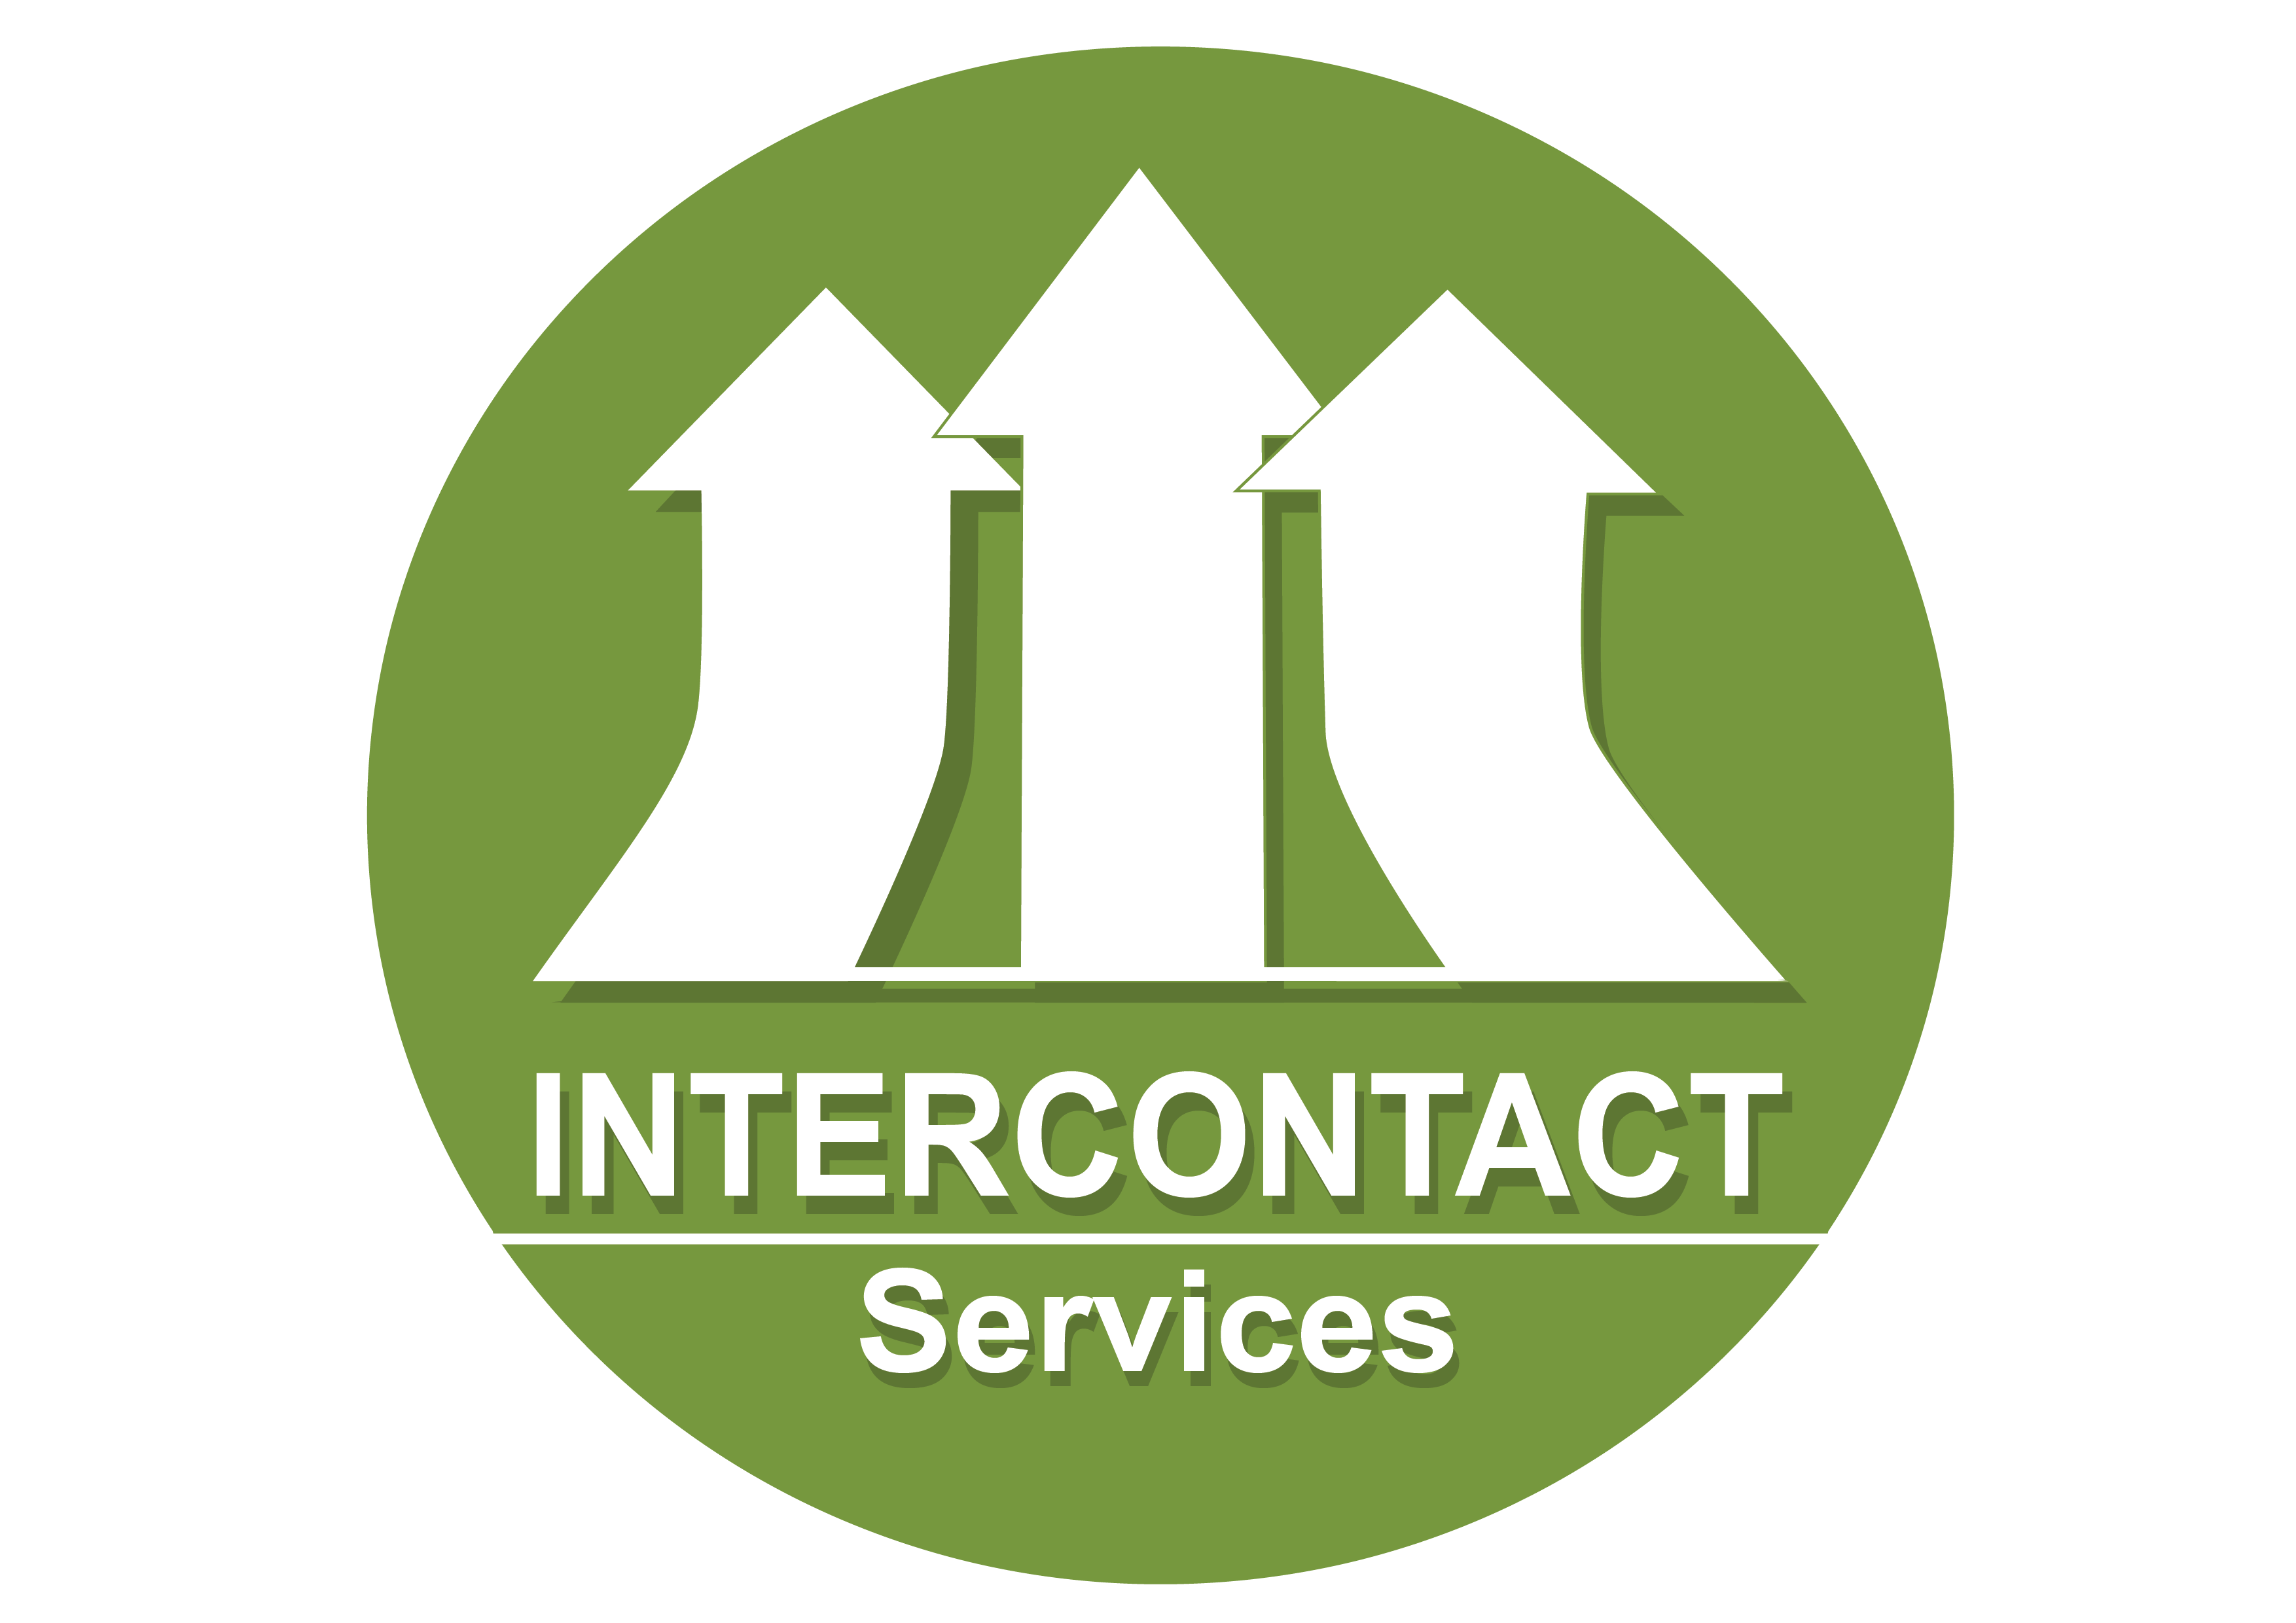 Intercontact Services sa